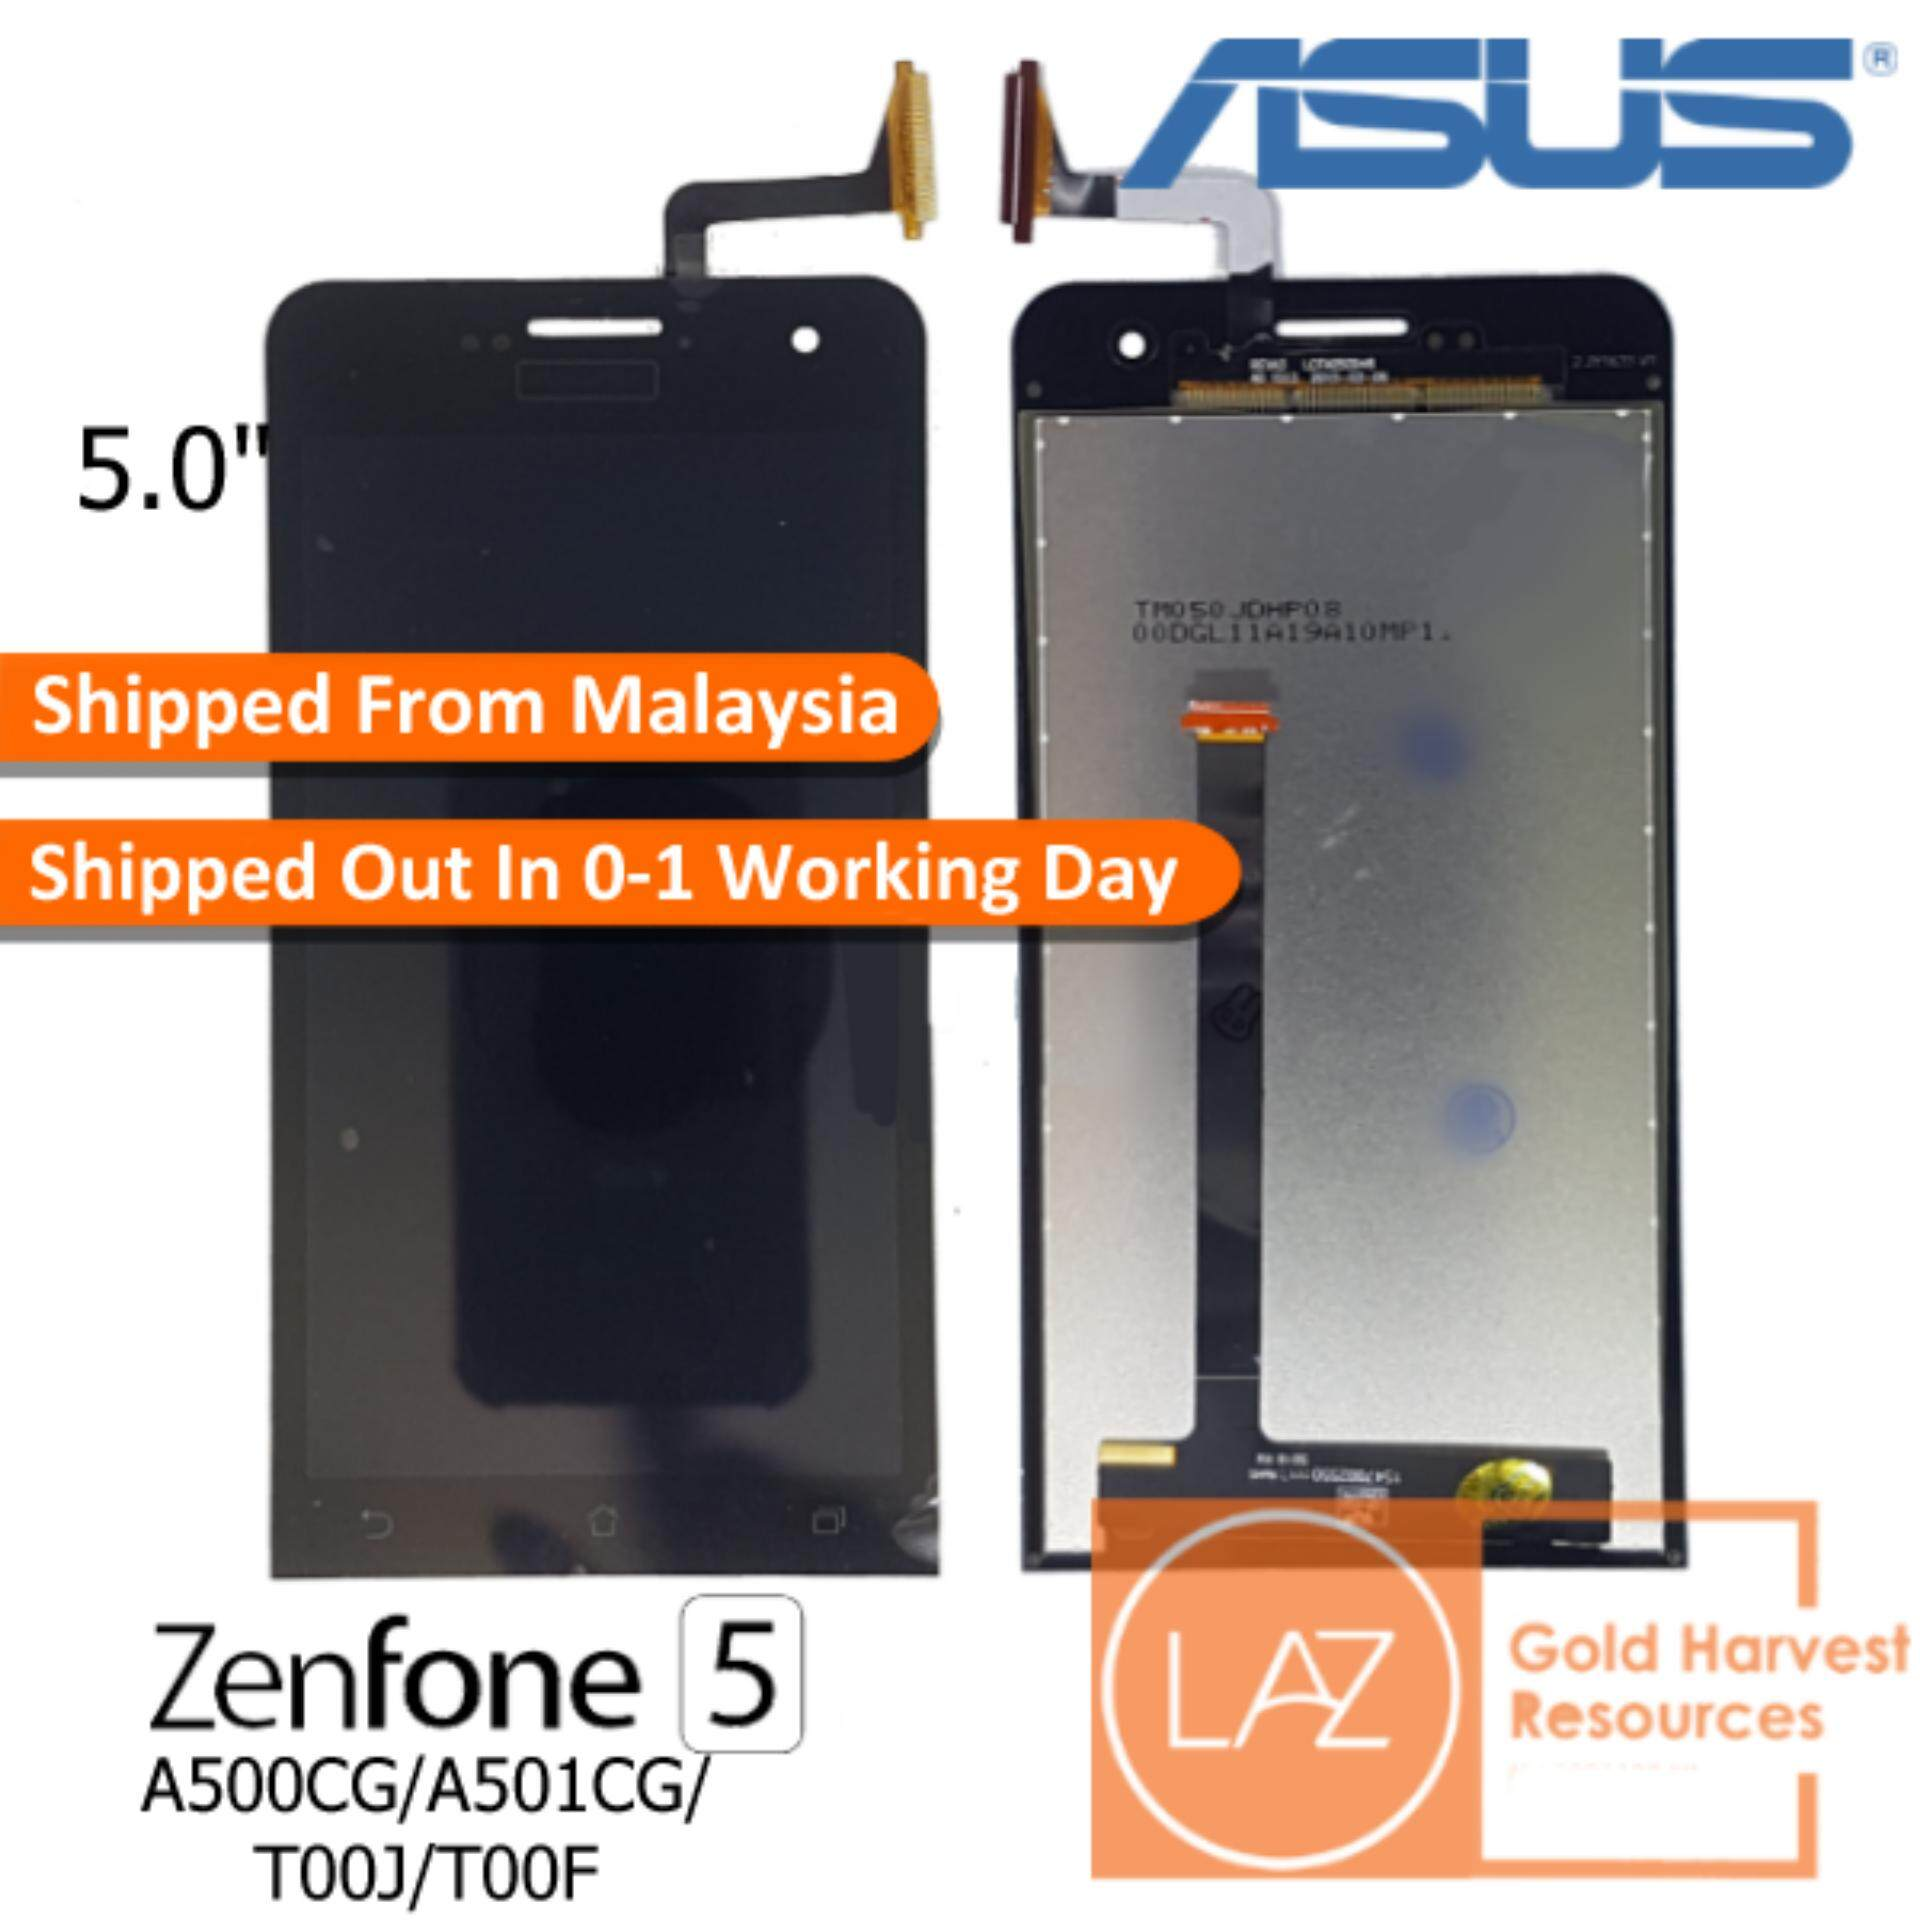 JOI,Android,ASUS - Buy JOI,Android,ASUS at Best Price in Malaysia